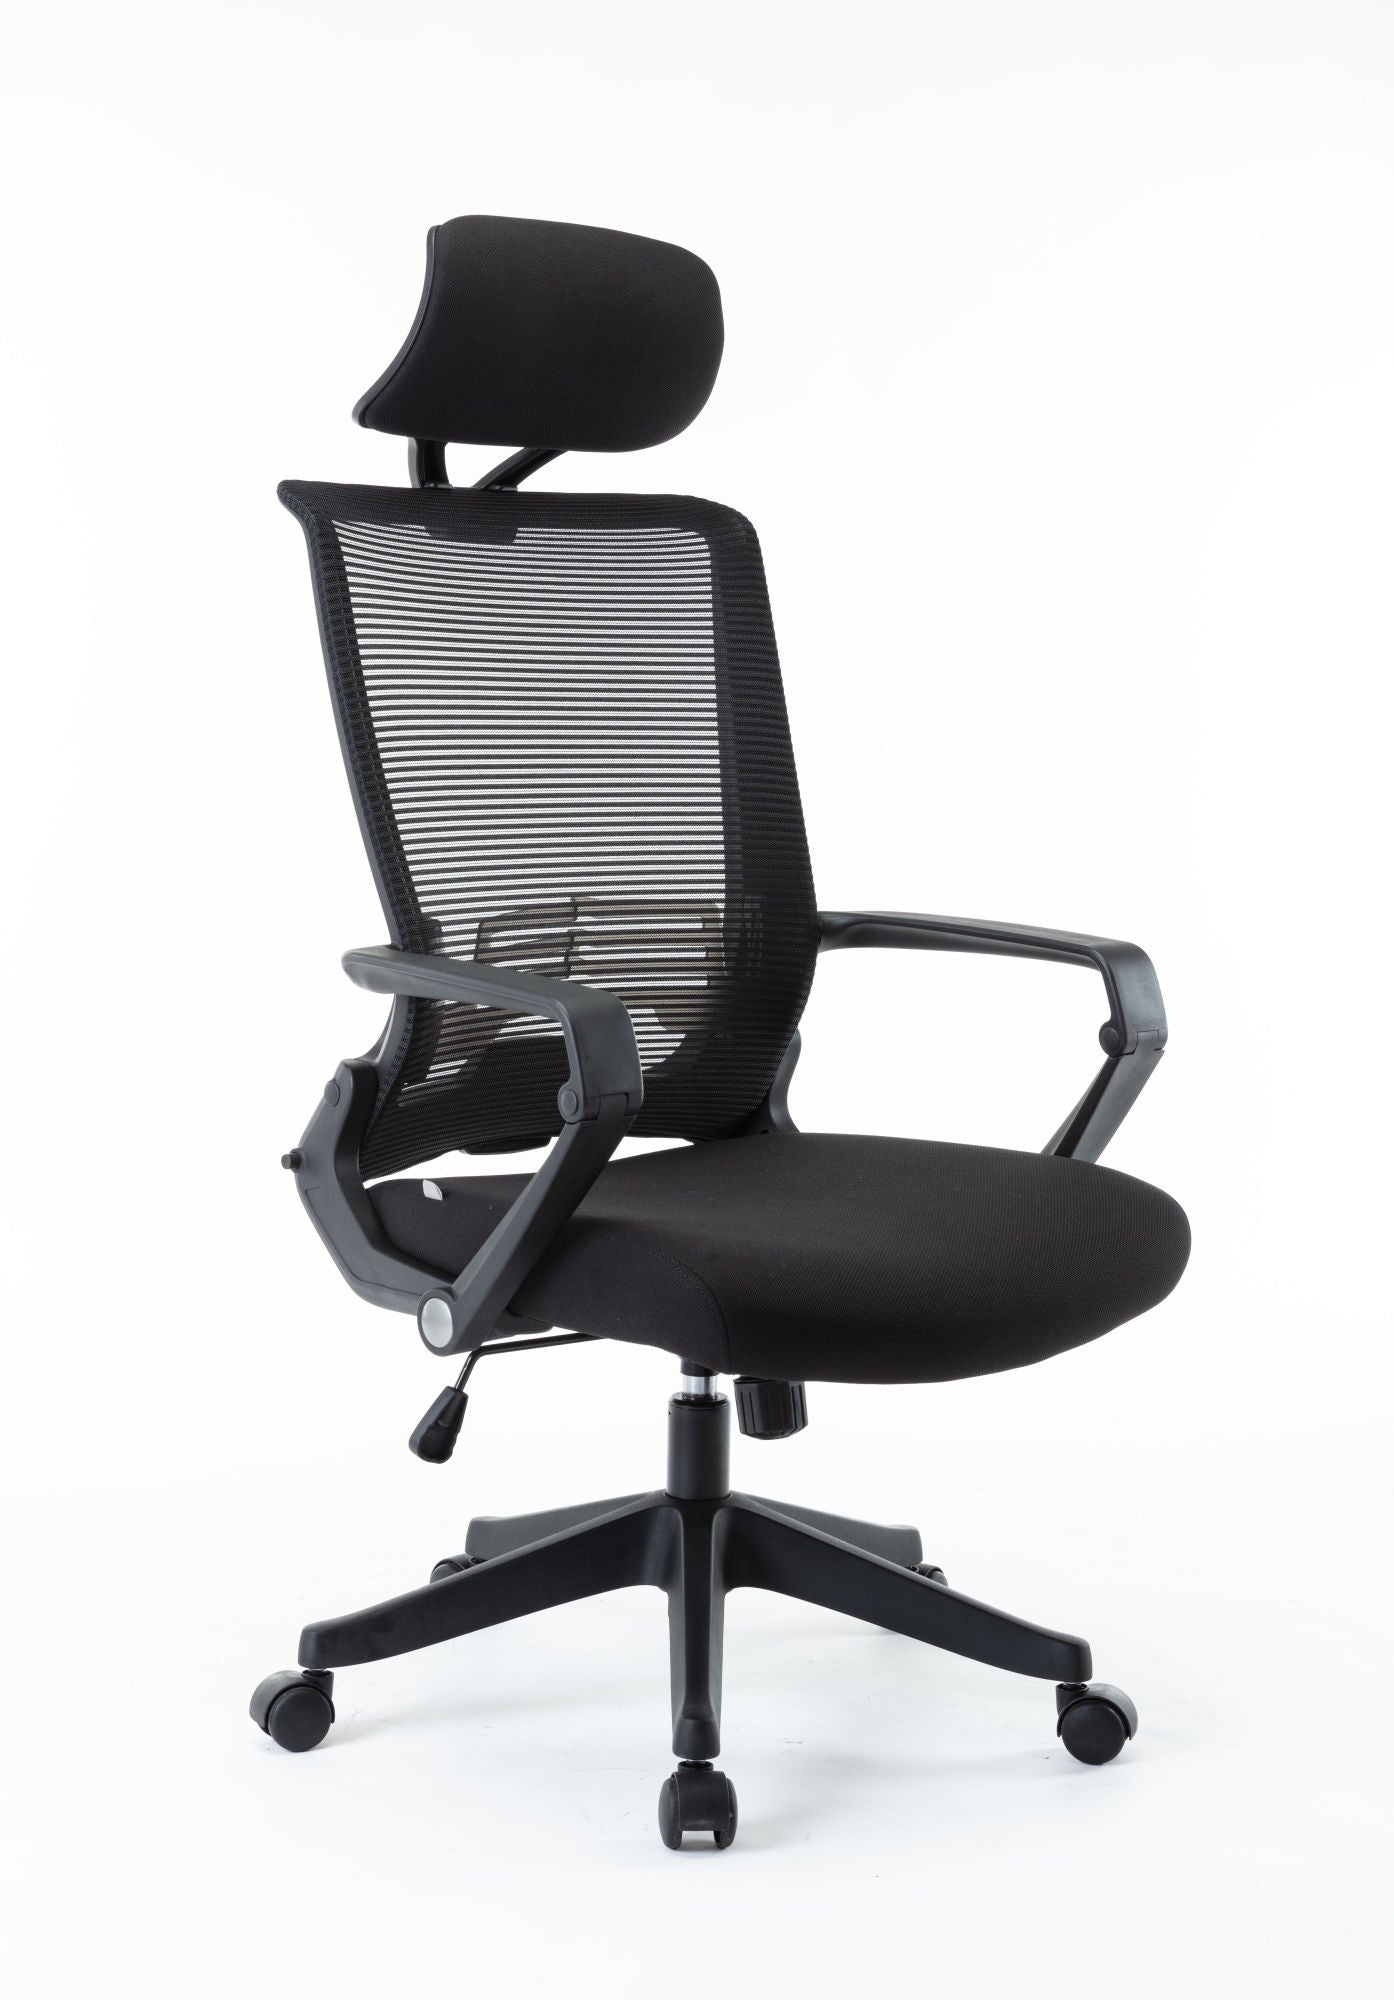 Free Shipping Mesh Office Chair, High Back Chair - Adjustable Headrest with Arms,  Lumbar Support